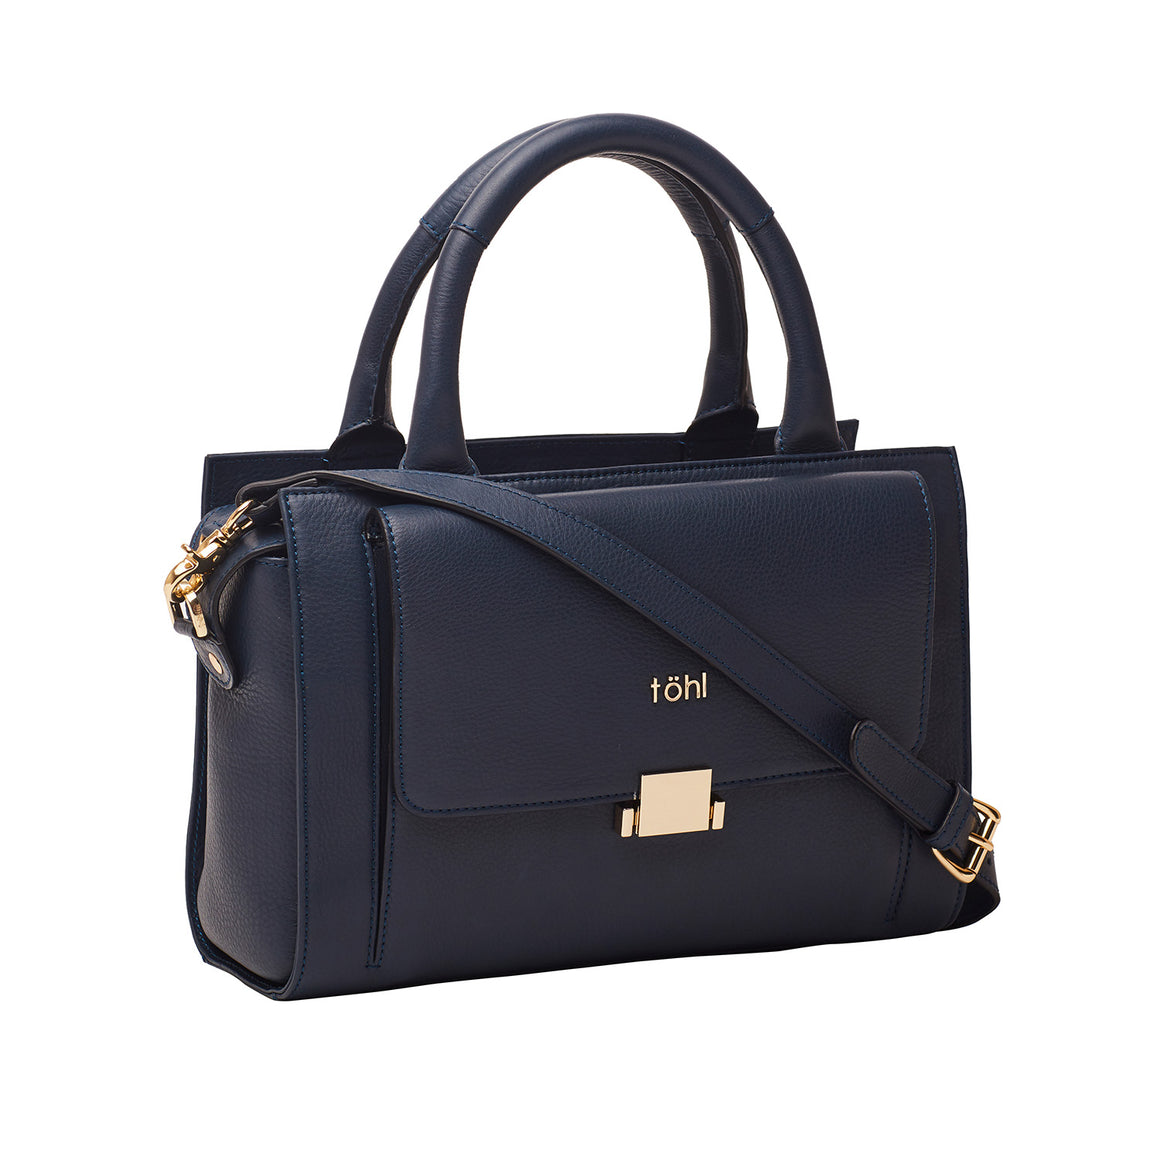 HH 0016 - TOHL CHISWELL WOMEN'S HANDBAG - INDIGO BLUE